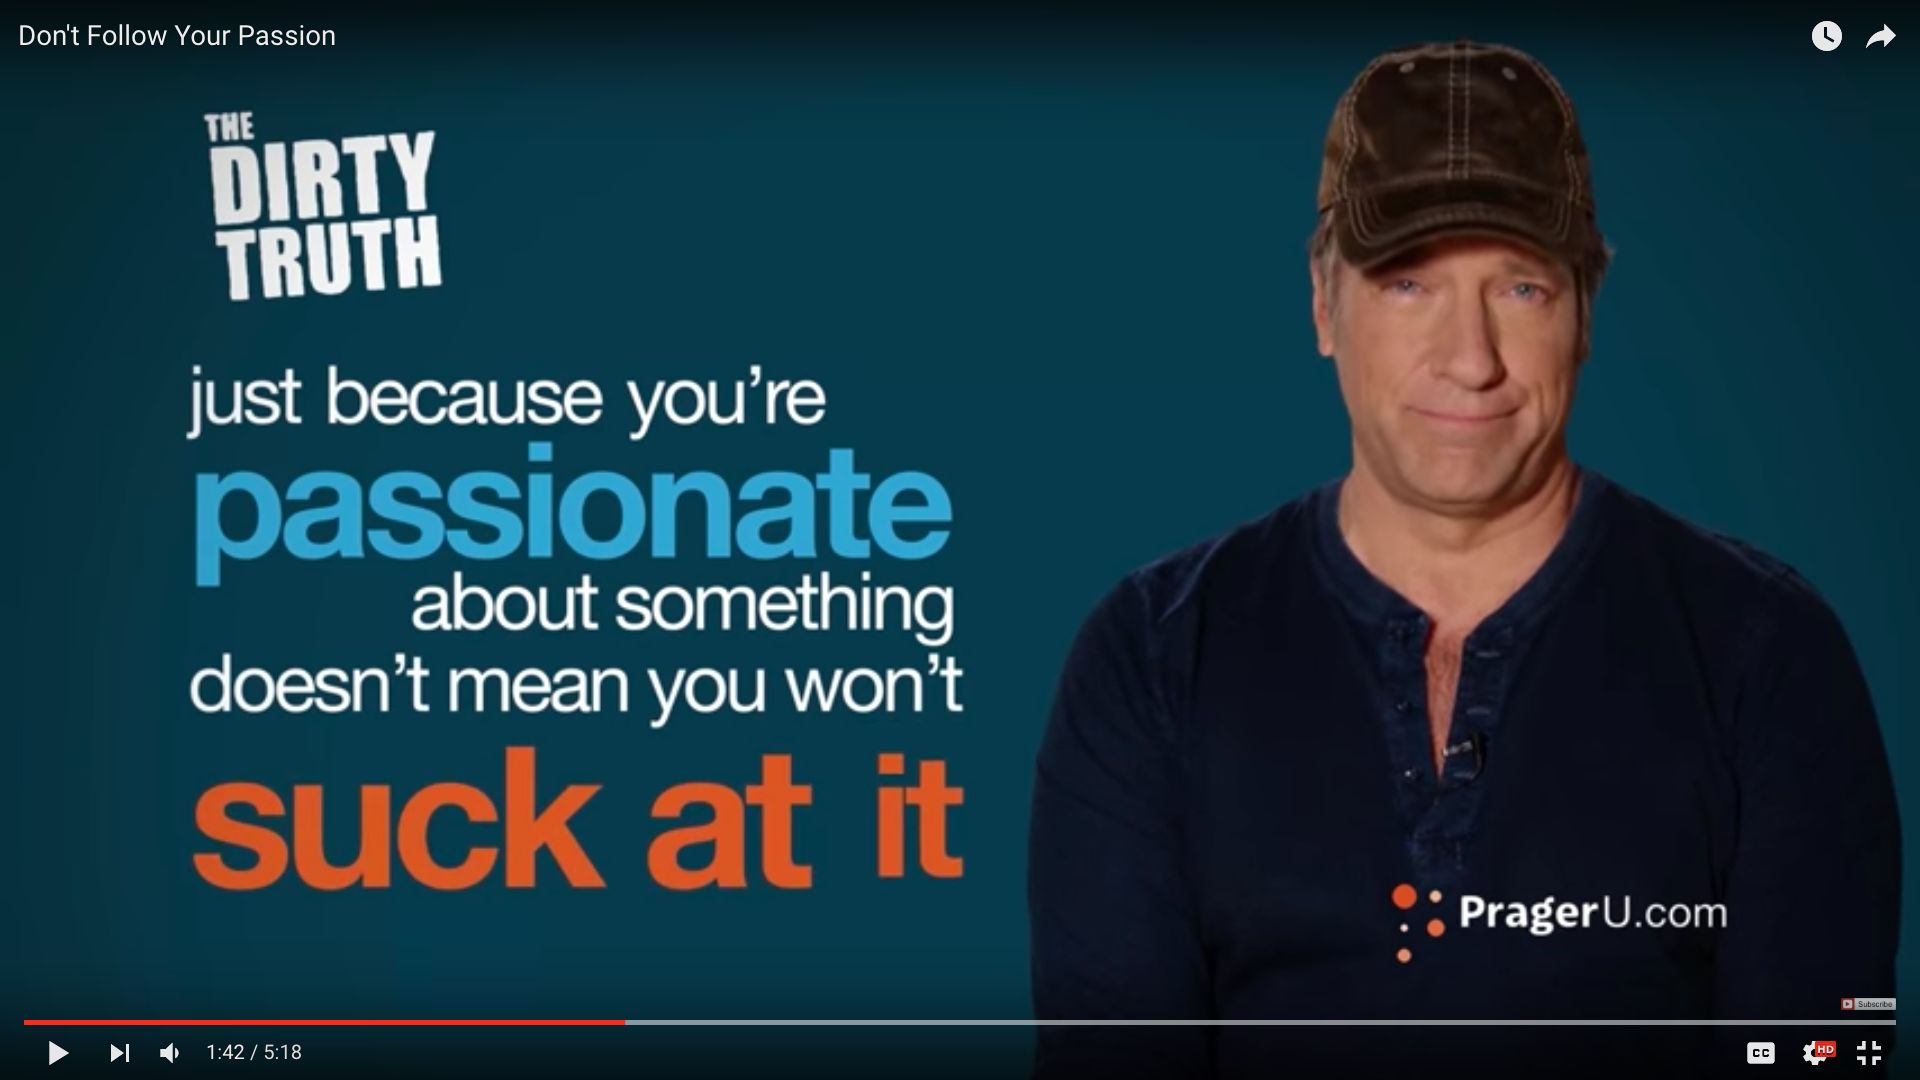 """Dirty Jobs"" star Mike Rowe delivered some colorful advice to recent college graduates on following their passion."